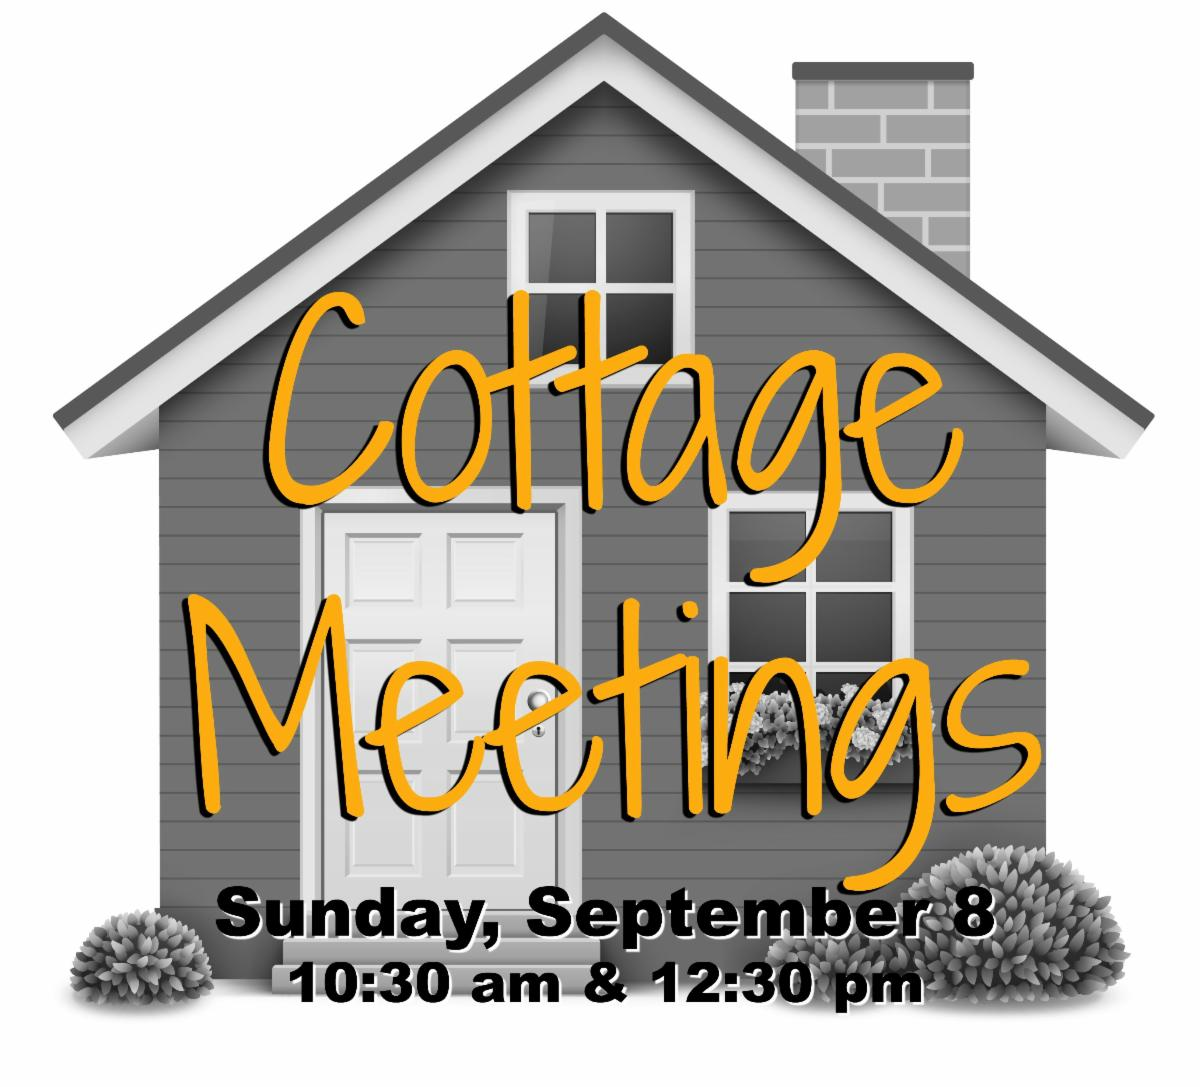 Cottage Meetings - September 8, 10:30am & 12:30pm